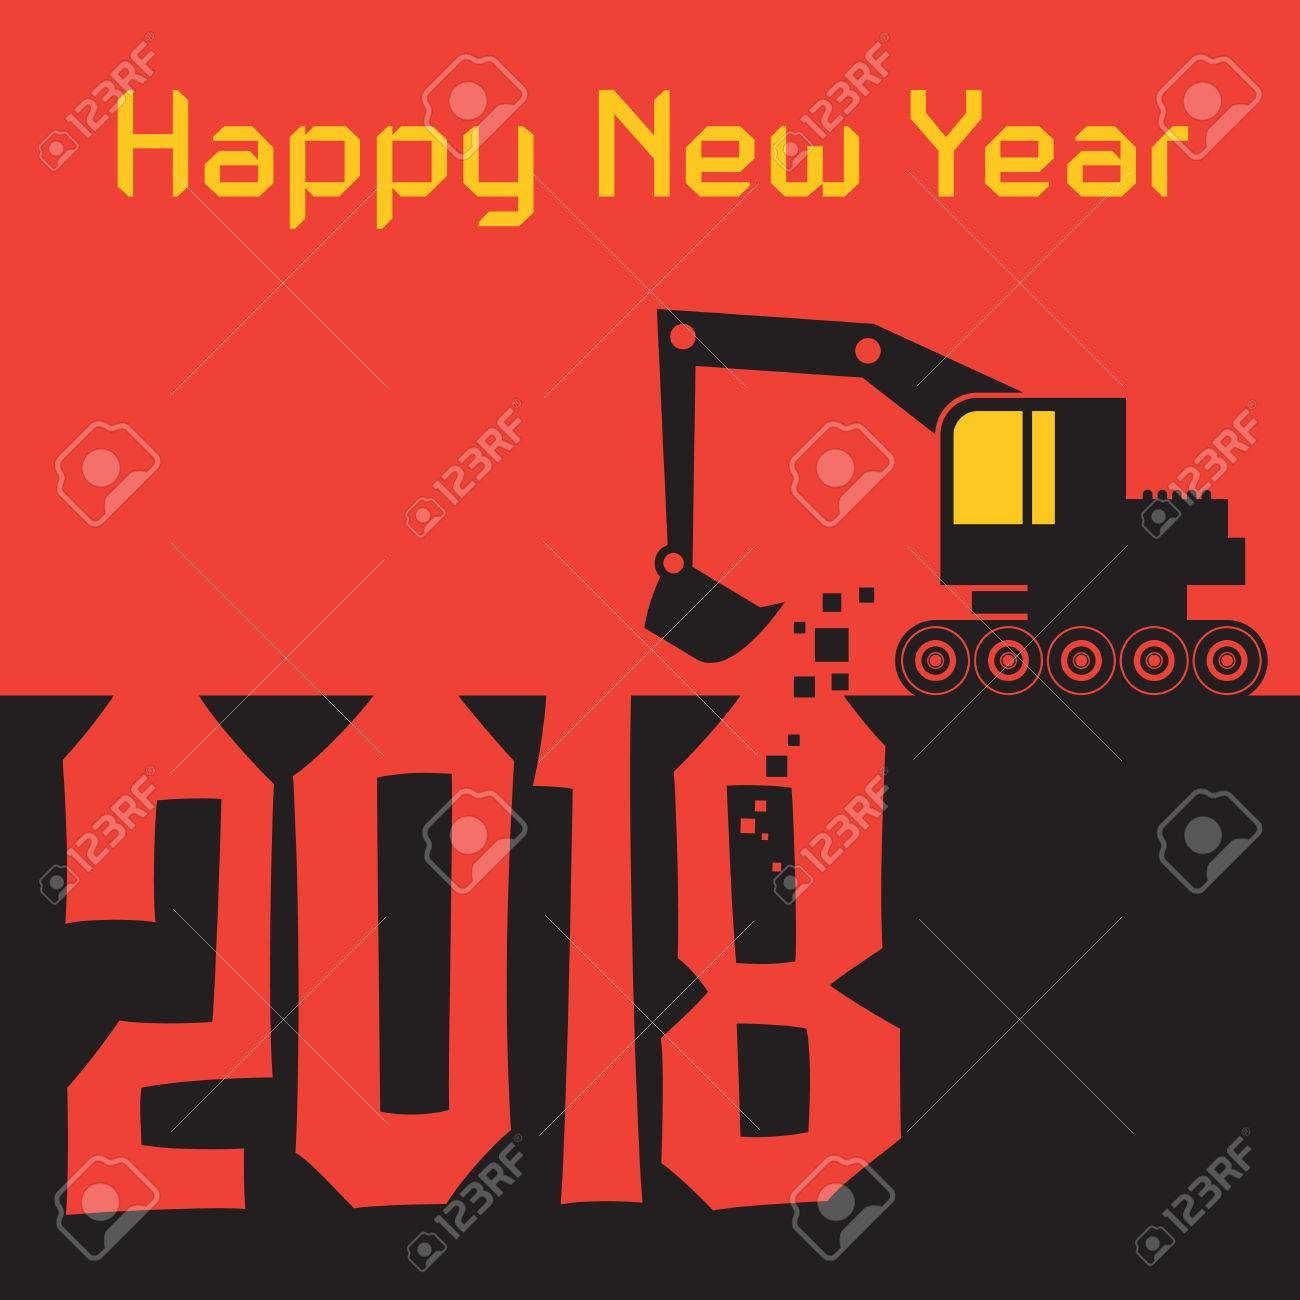 Happy new year greeting card with excavator digger at work vector happy new year greeting card with excavator digger at work vector illustration stock vector 84001901 m4hsunfo